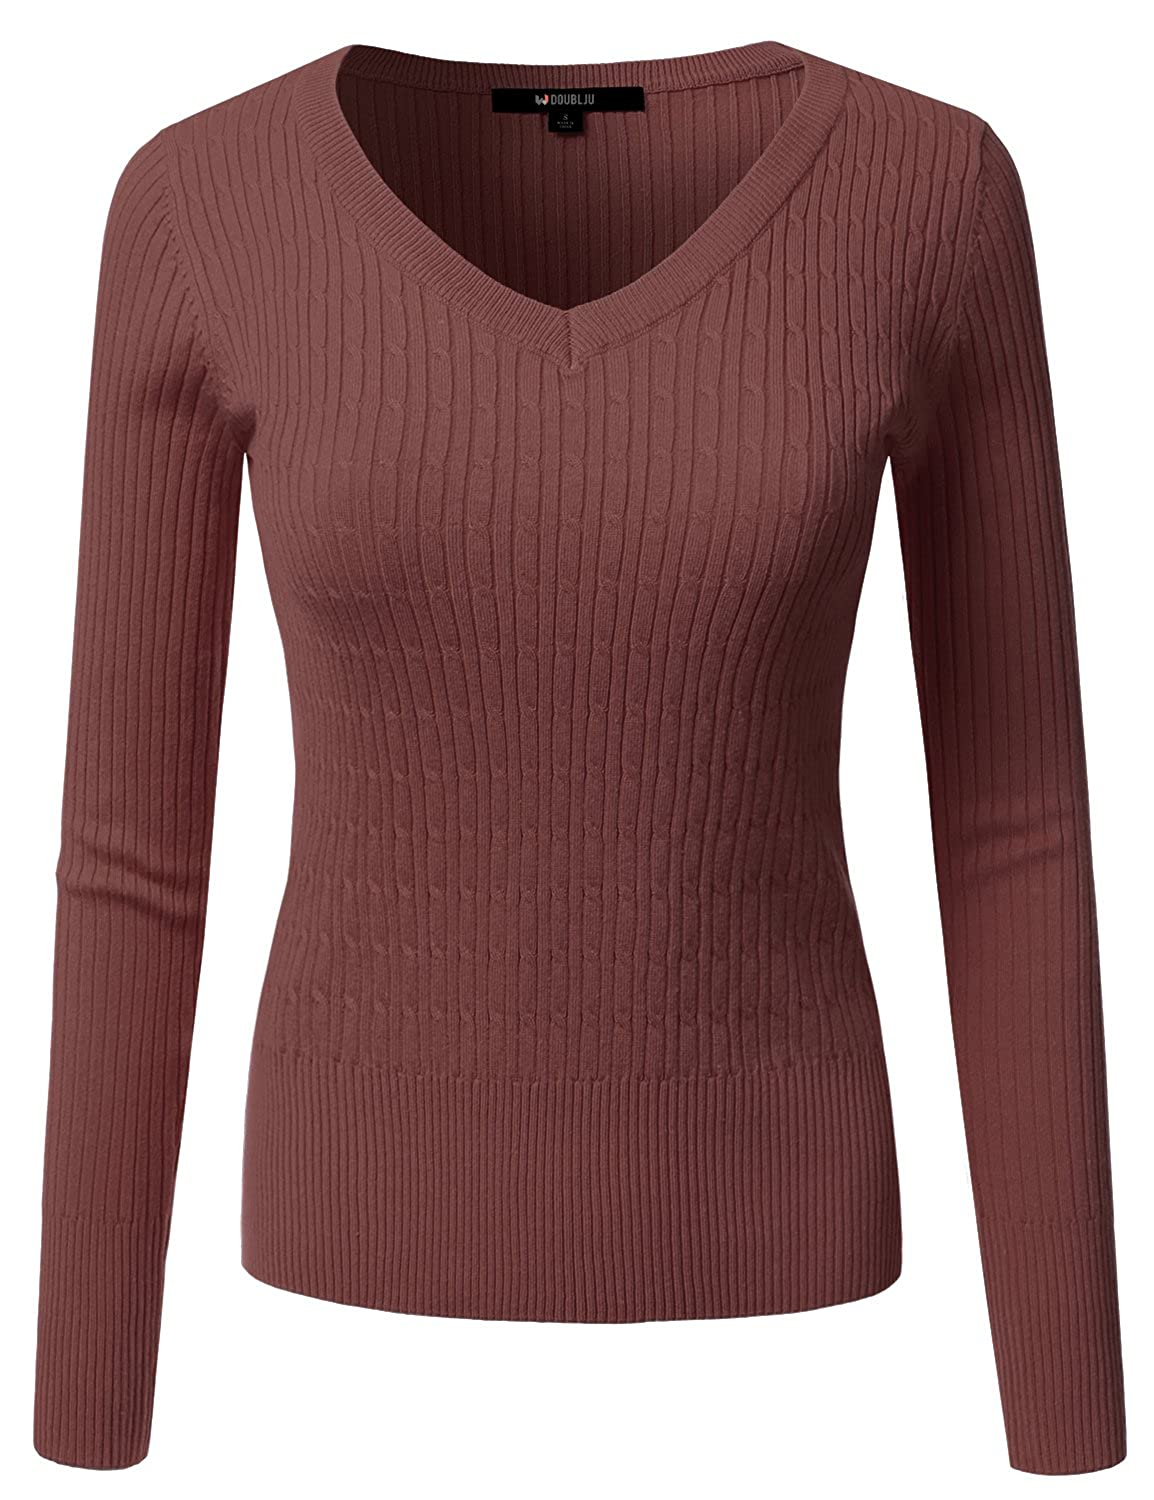 Awoswl0226_redbean Doublju Slim Fit Twisted Cable Knit VNeck Sweater For Women